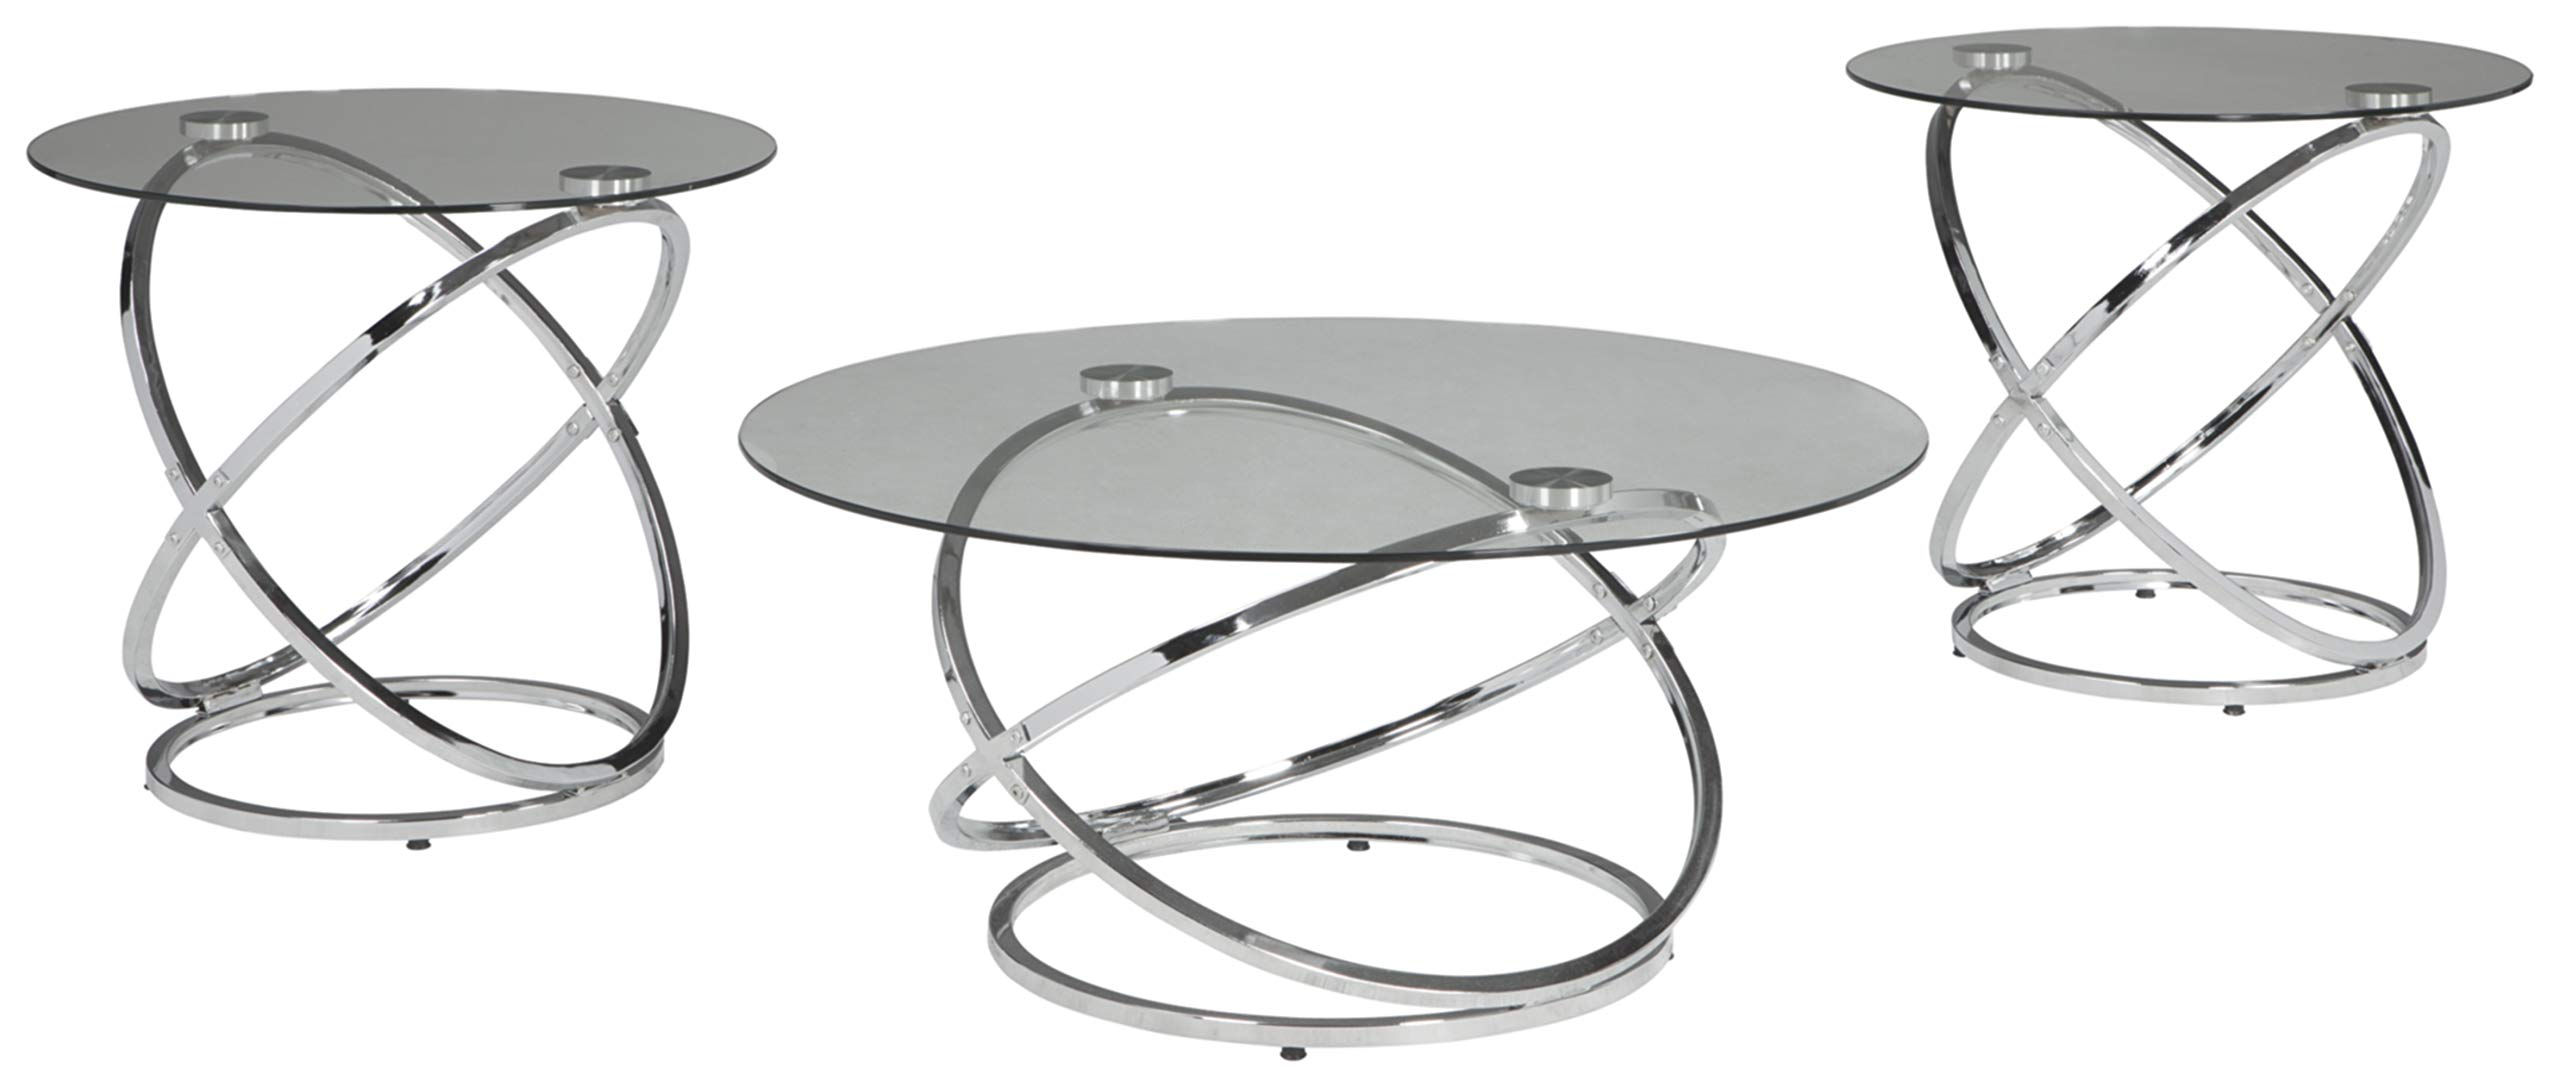 Ashley Furniture Signature Design - Hollynyx Contemporary 3-Piece Table Set - Includes Cocktail Table & Two End Tables - Chrome Finish by Signature Design by Ashley